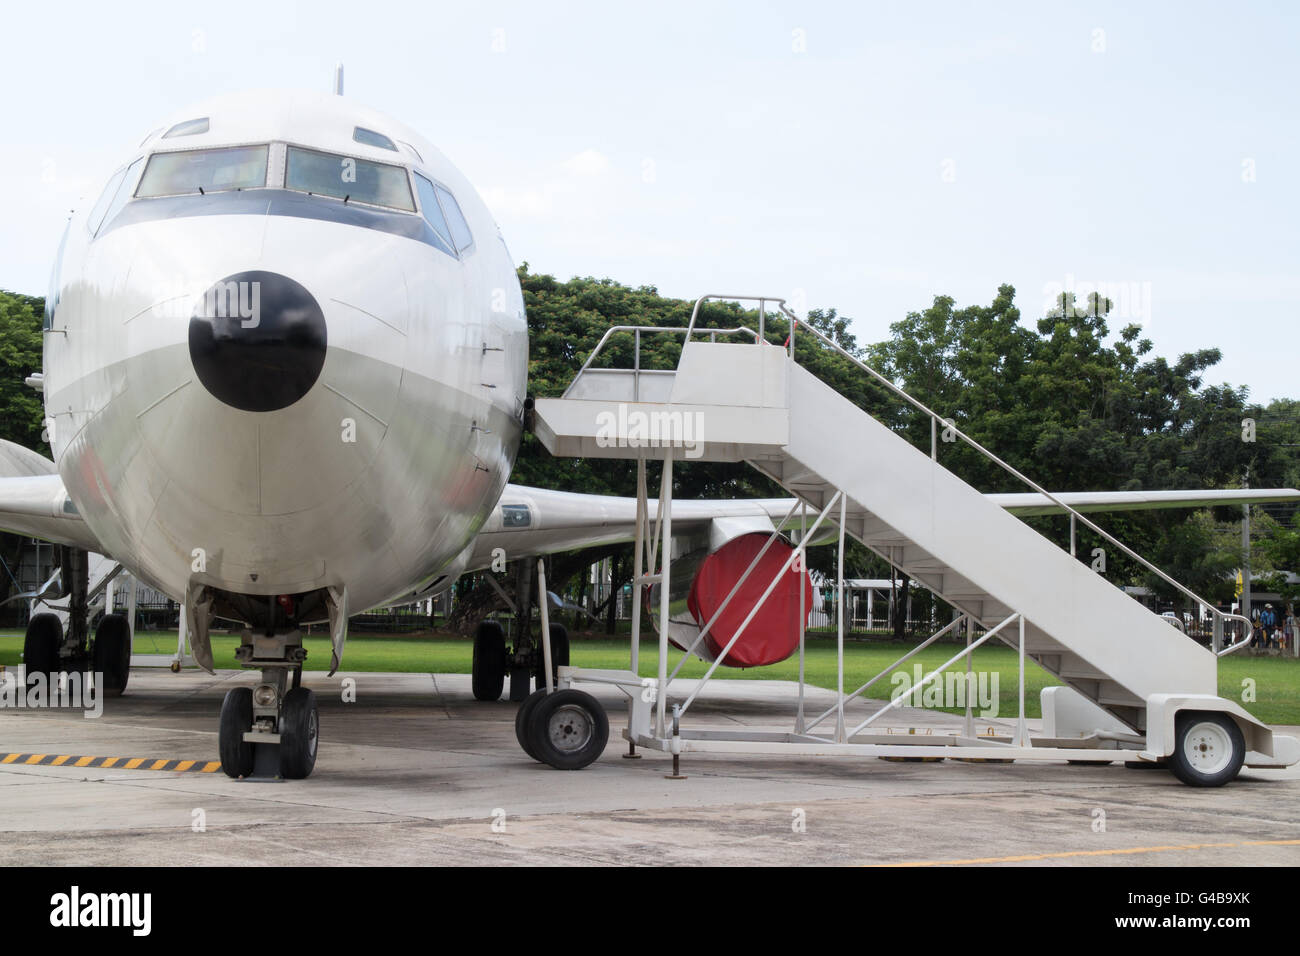 Airplane Nose With Passenger Stairs   Stock Image